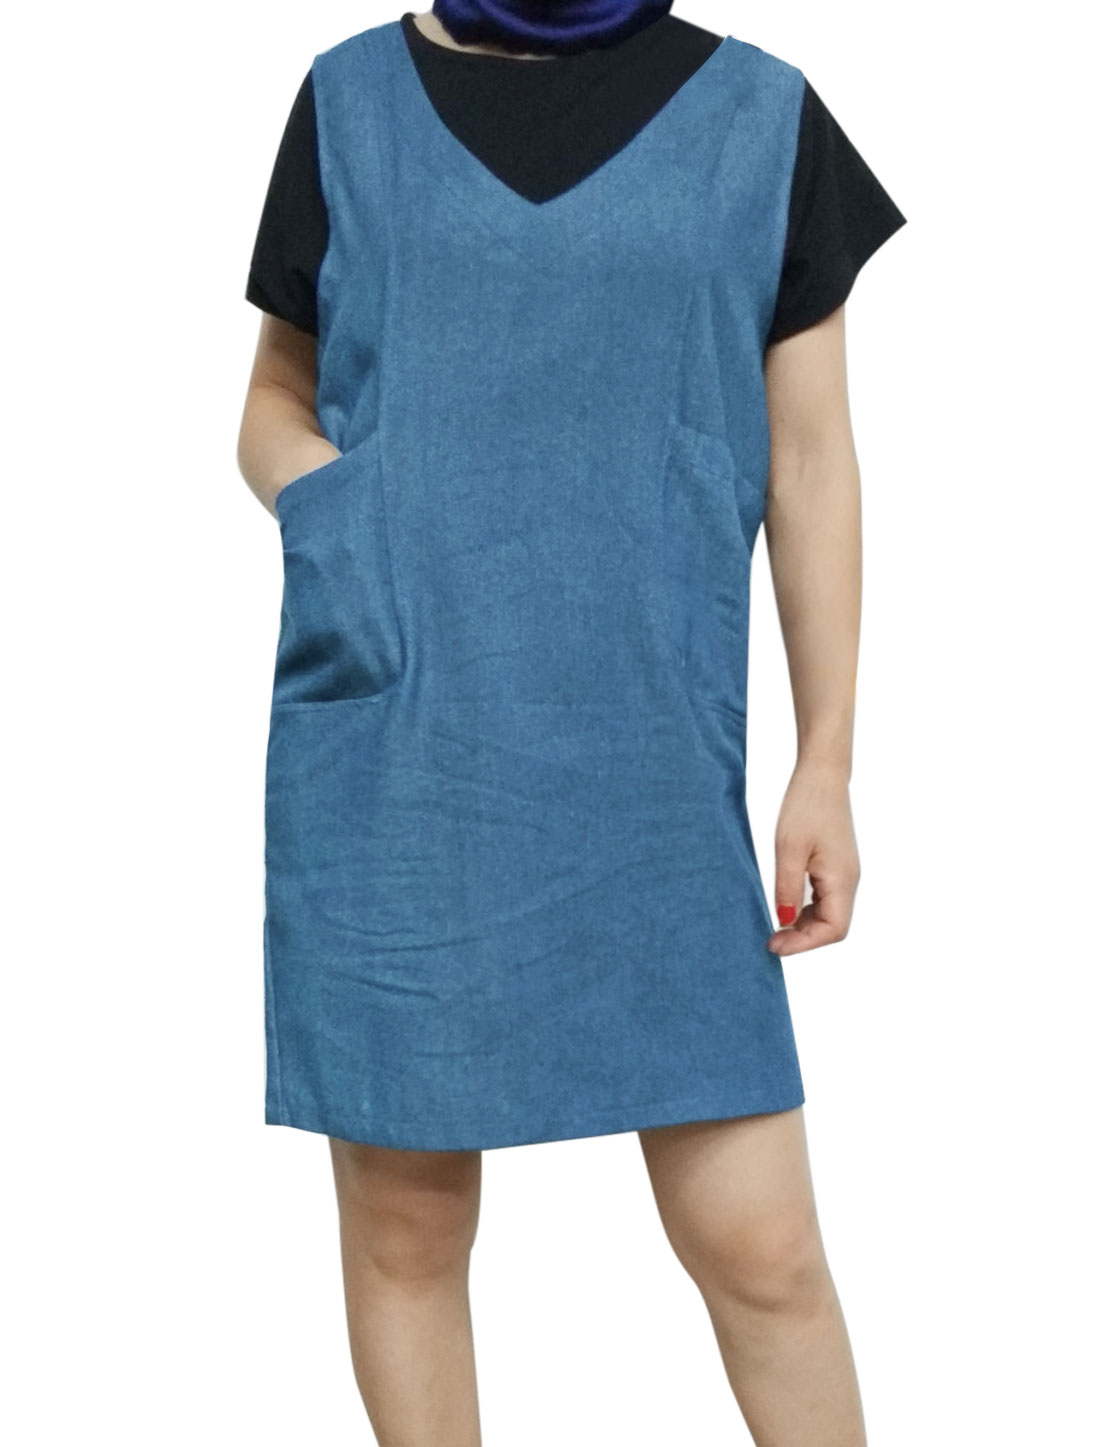 Women V Neck Sleeveless Pockets Front Loose Denim Straight Dress Blue L